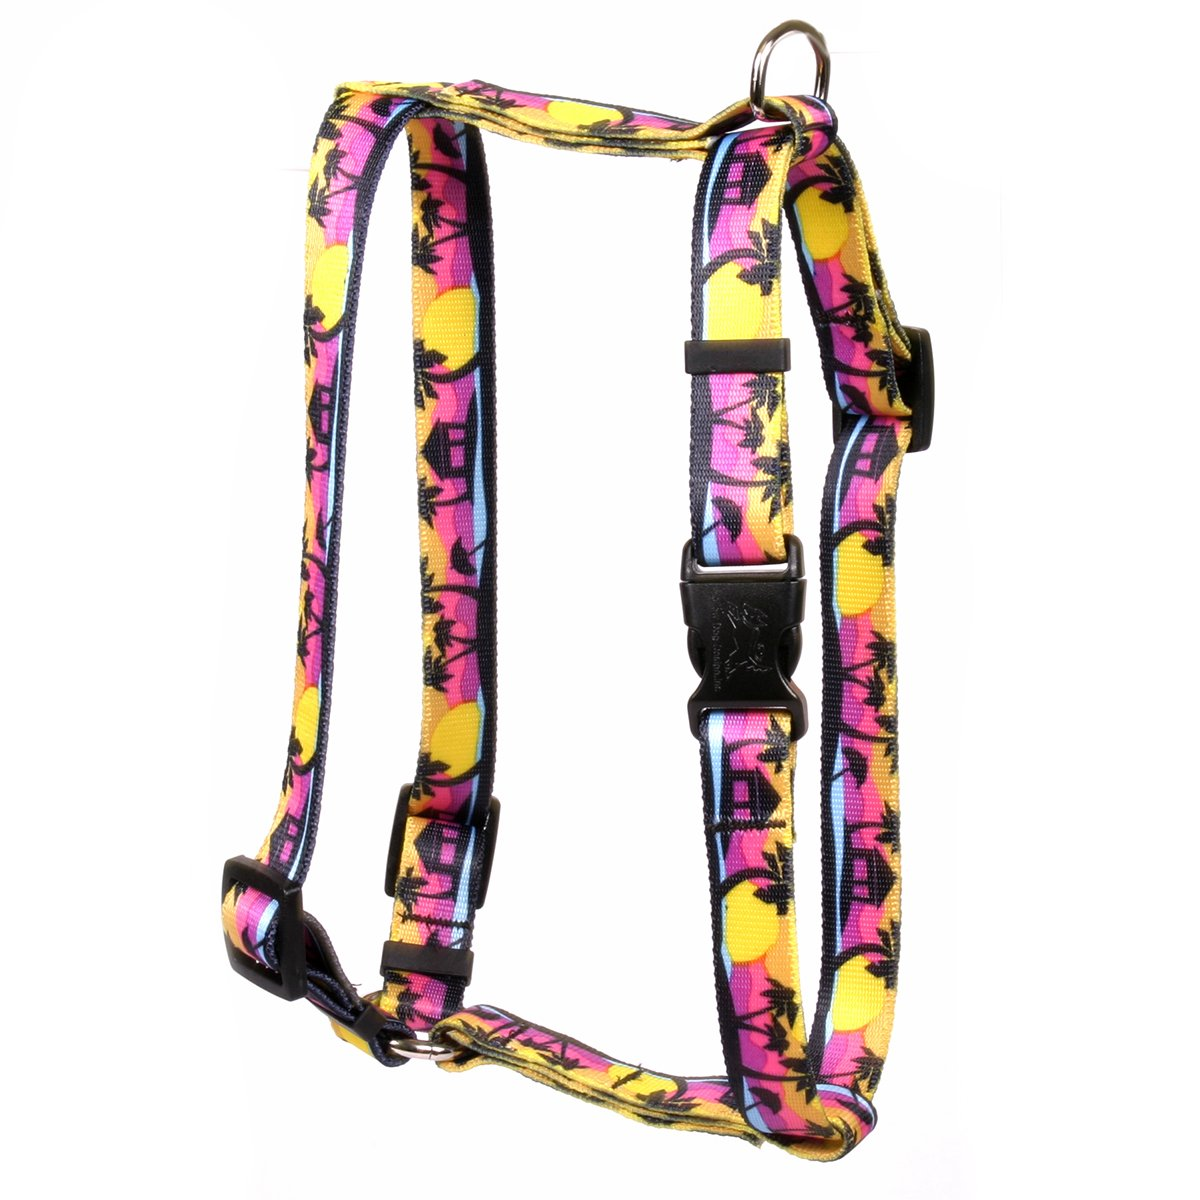 Yellow Dog Design Palm Tree IslRoman Style Dog Harness, Small/Medium-3/4 Wide fits Chest of 14 to 20''